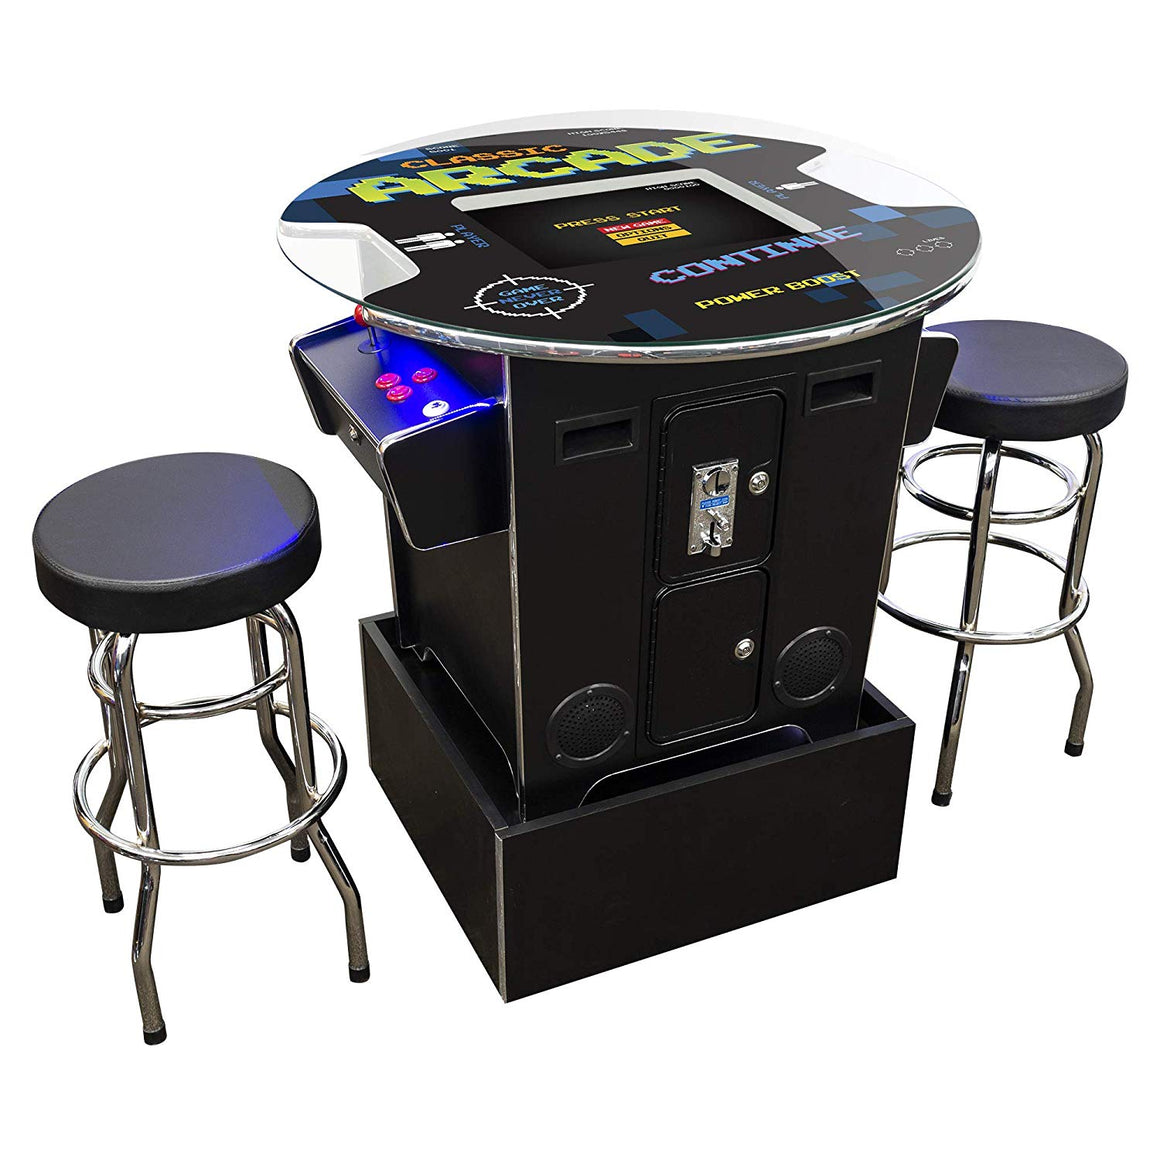 Cocktail Arcade Machine | Arcade Riser Included | Round Glass Top Creative Arcades